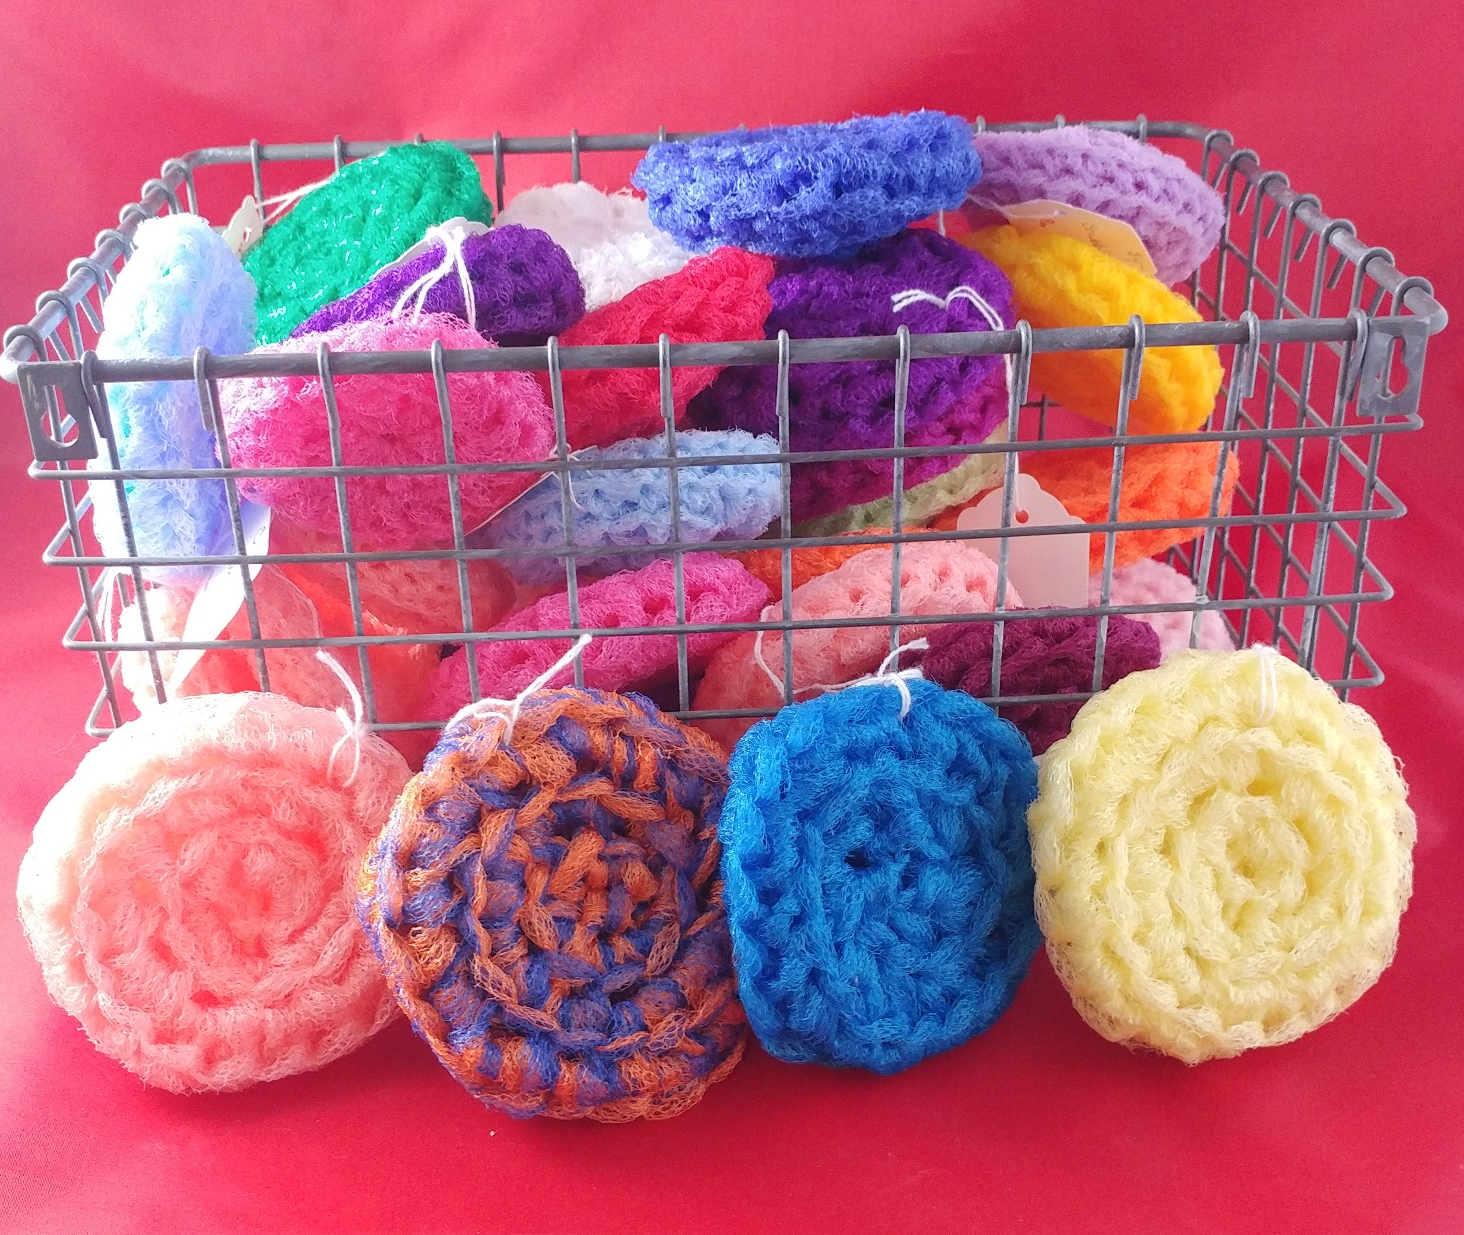 photo of wire basket of crocheted scrubbies in various colors